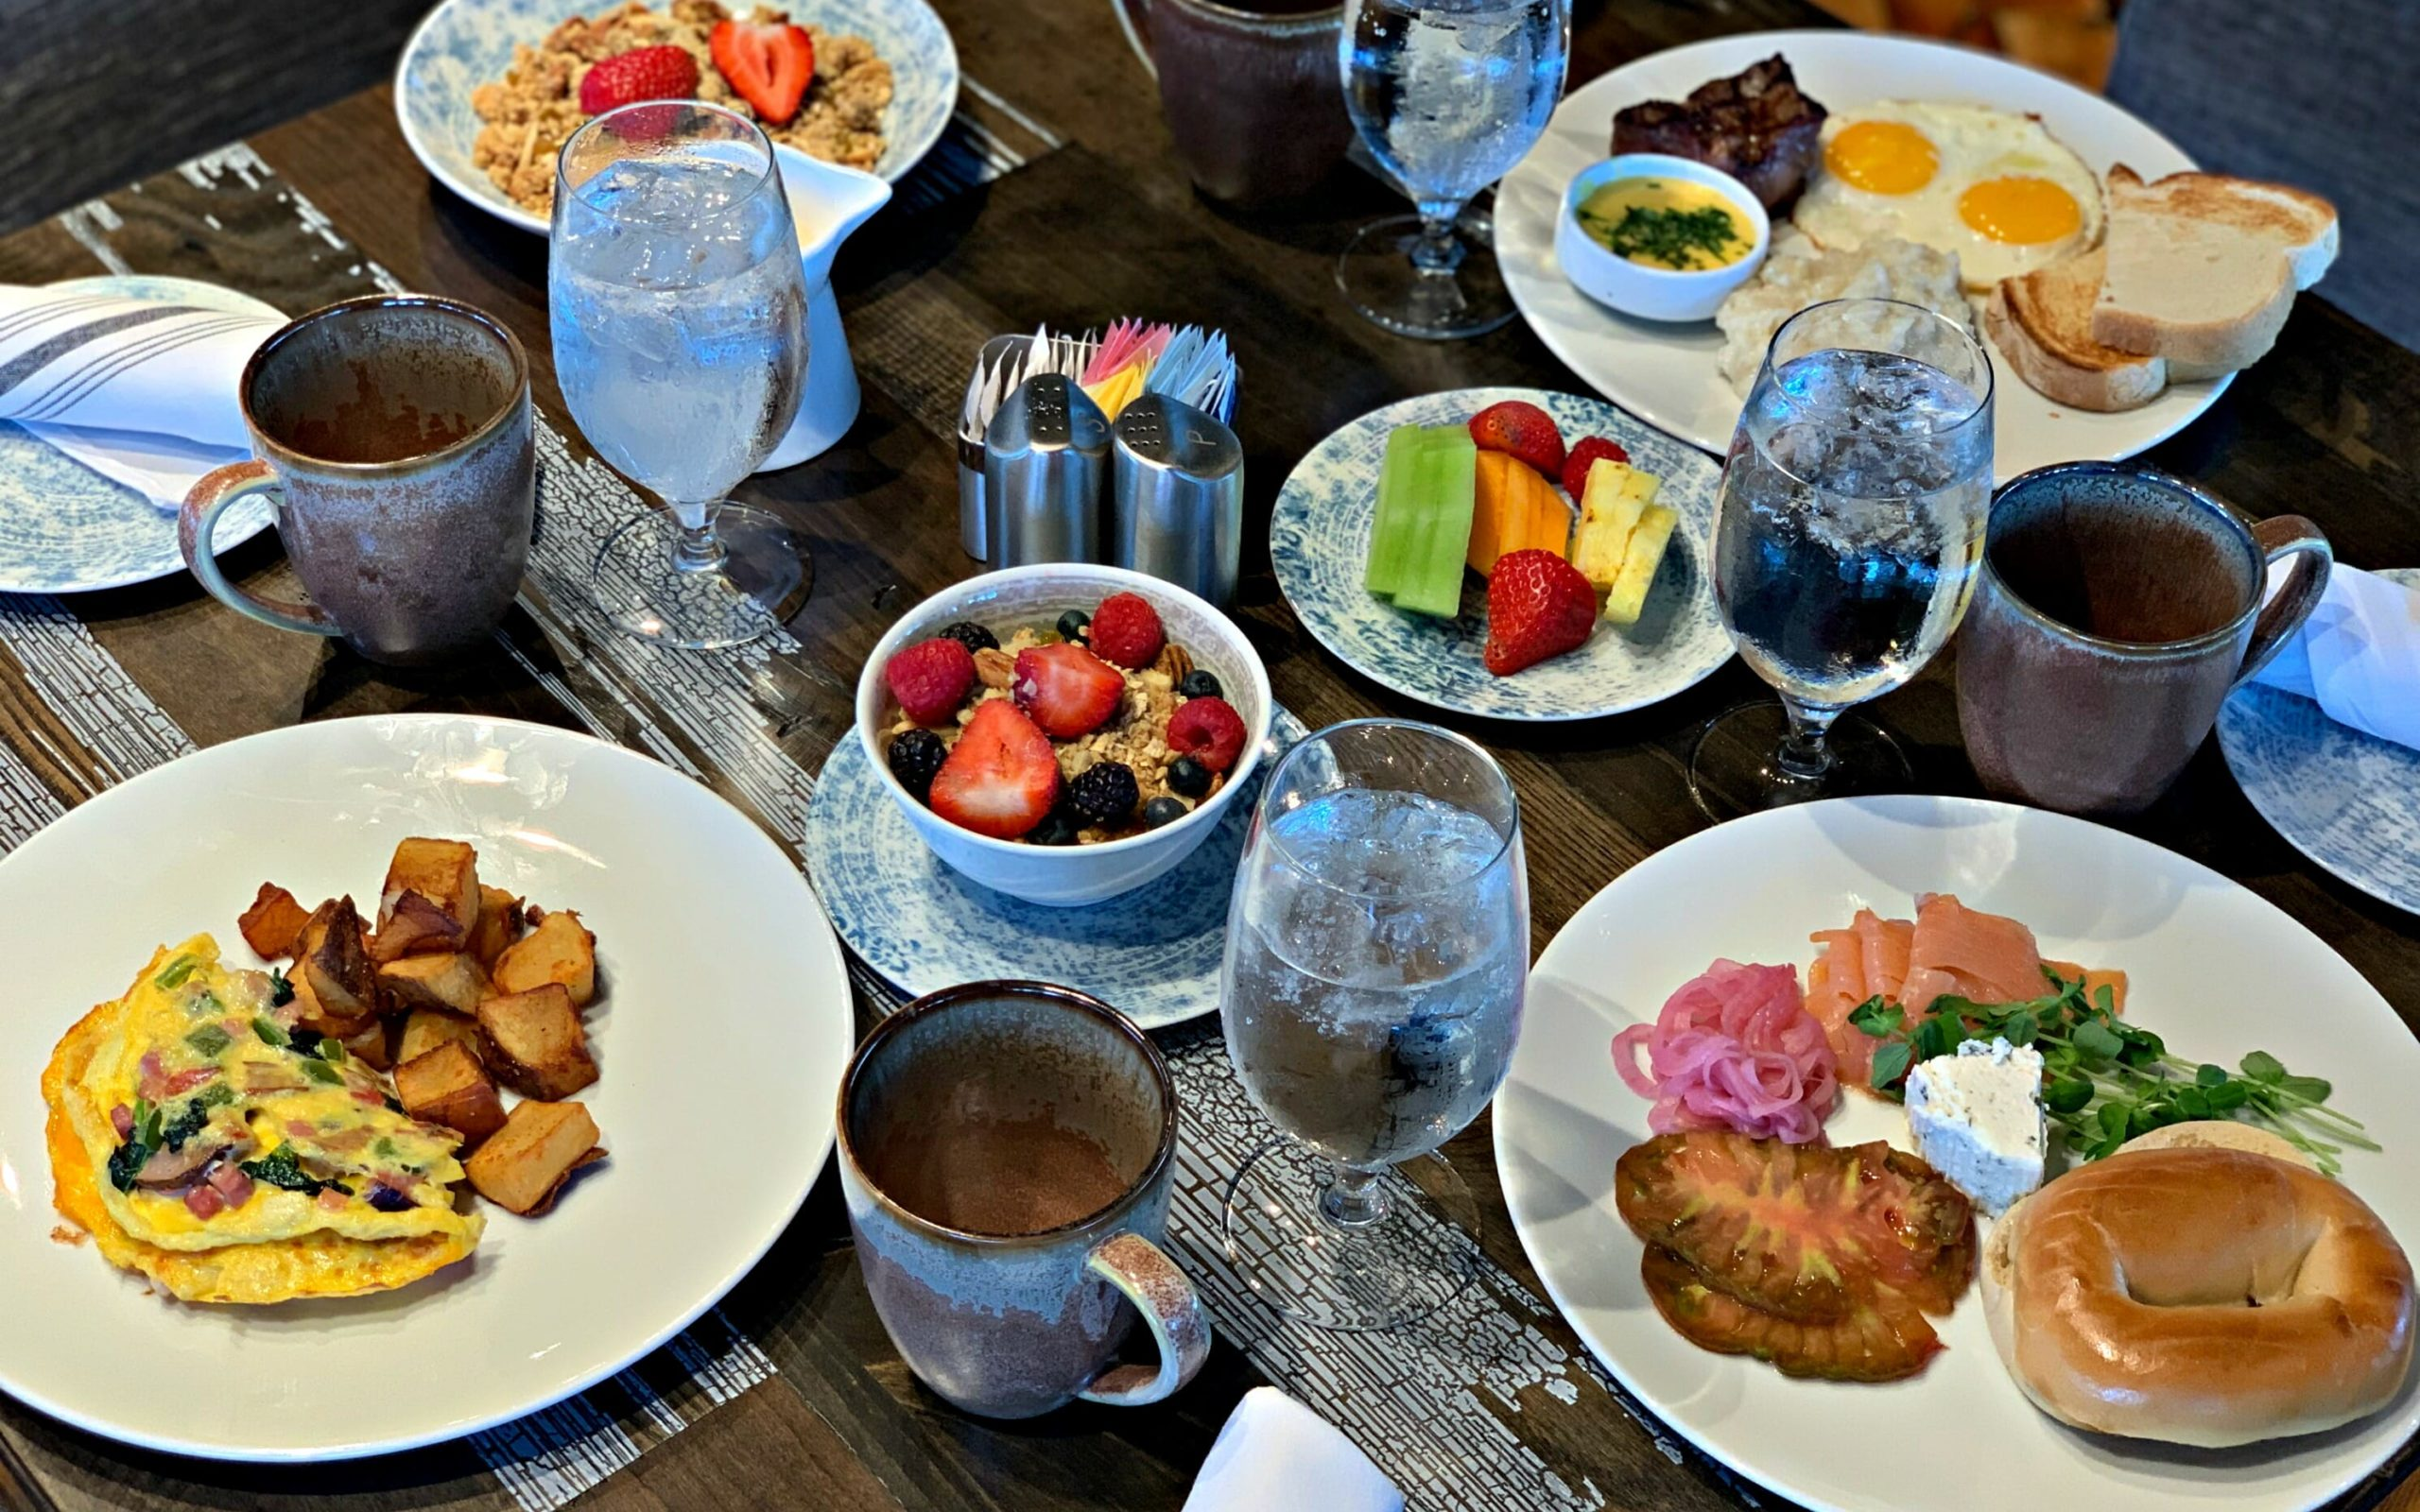 an array of breakfast dishes on wooden table